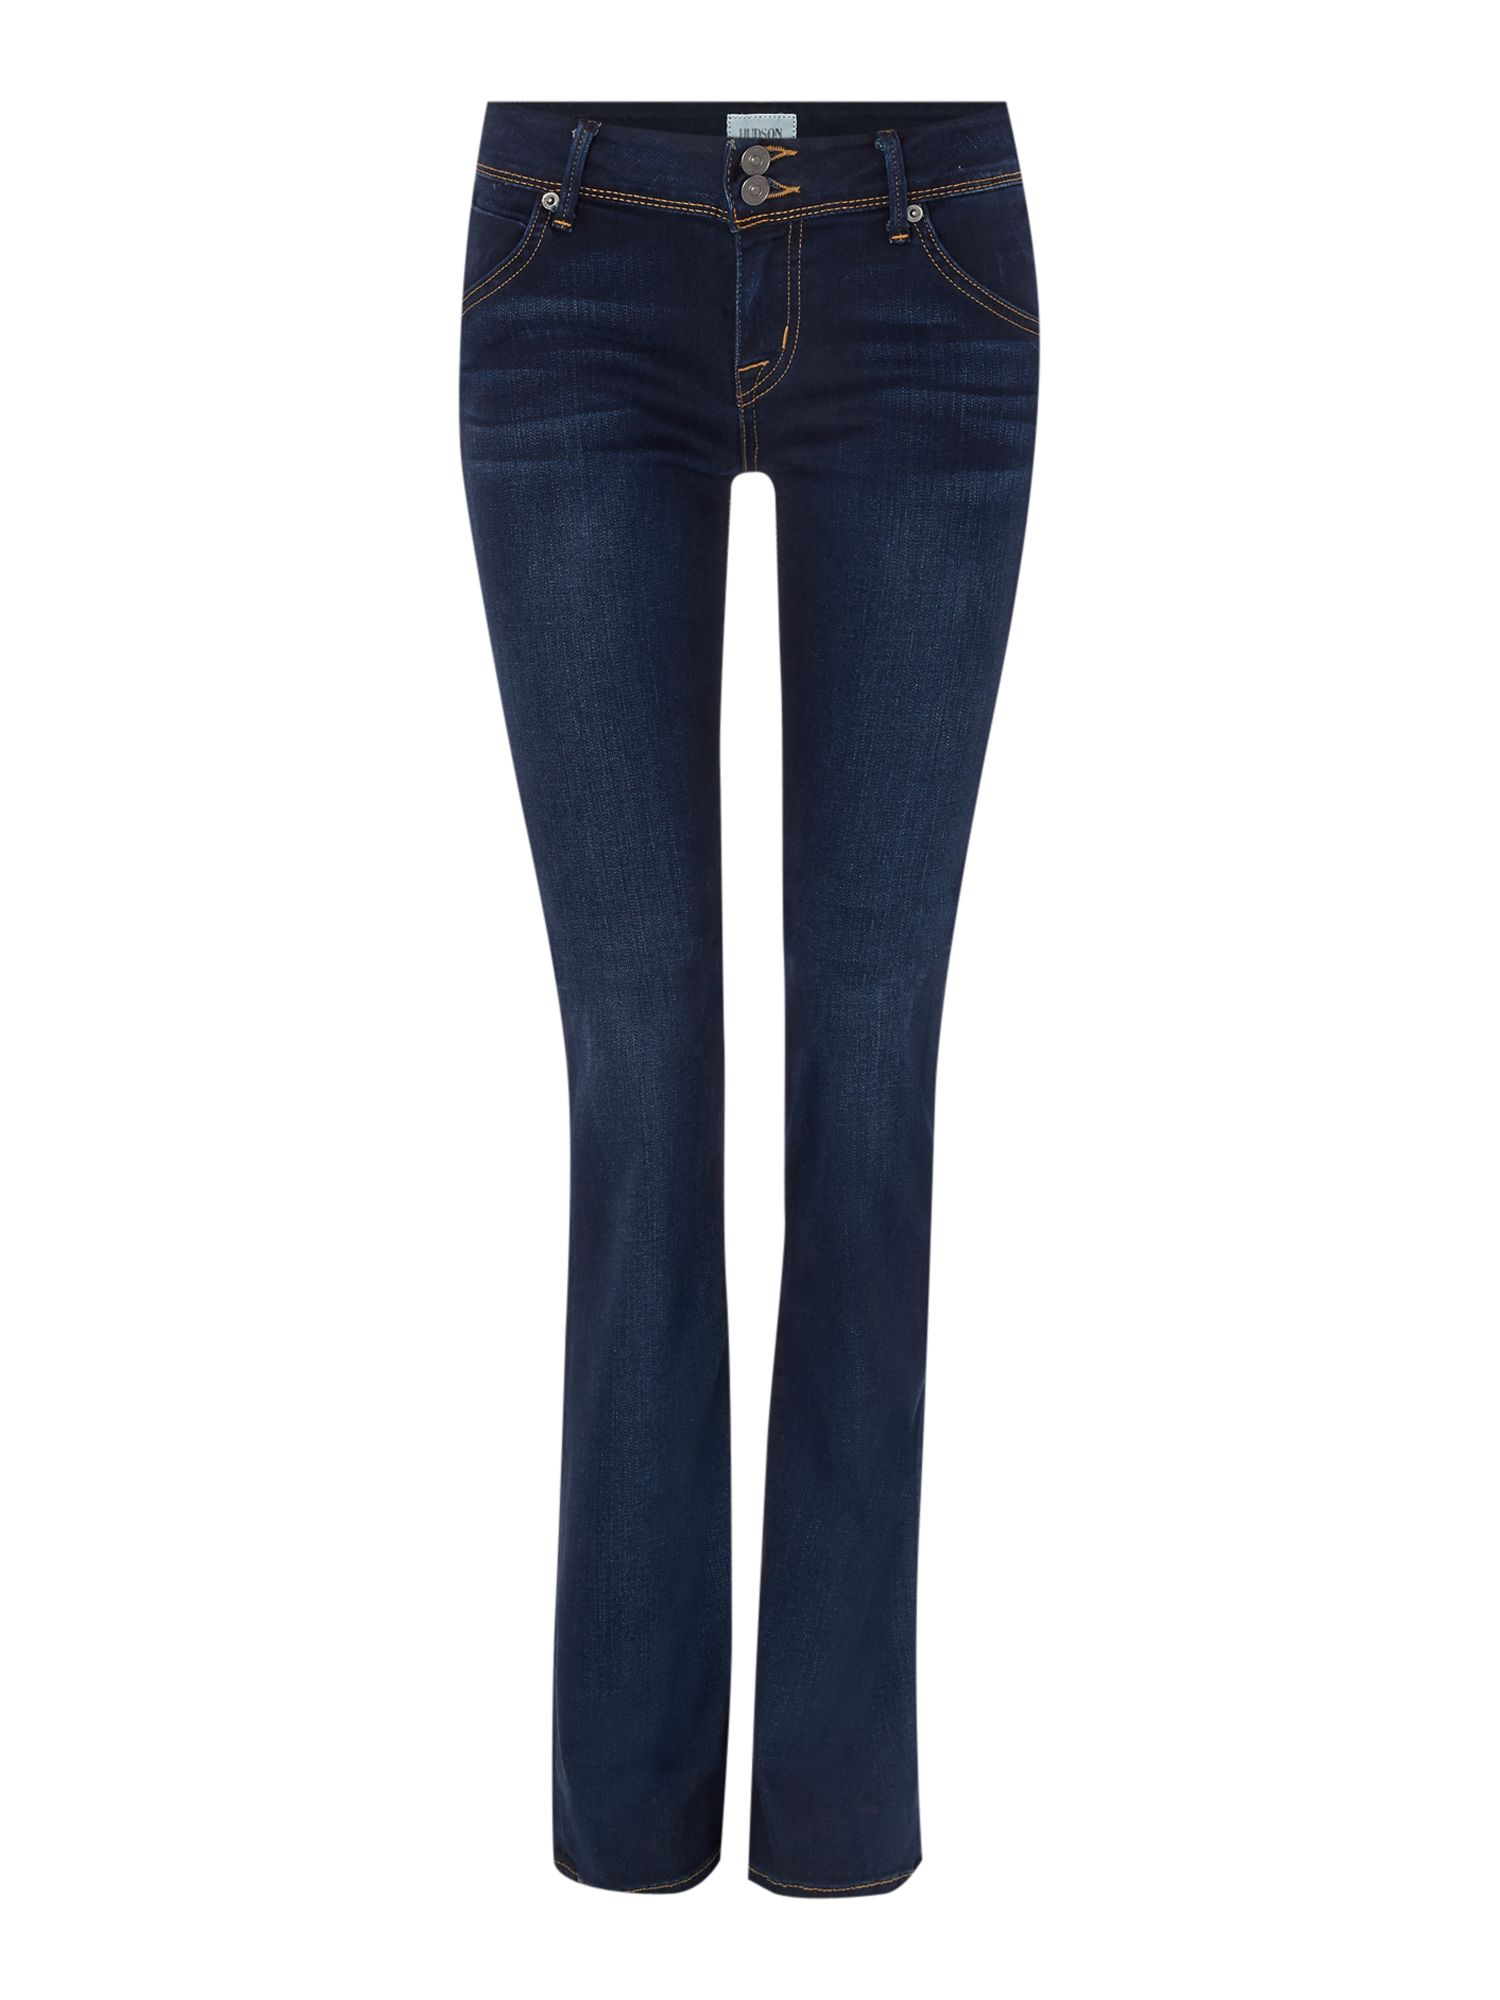 Hudson Jeans Beth mid rise baby bootcut jean in oracle Denim Dark Wash